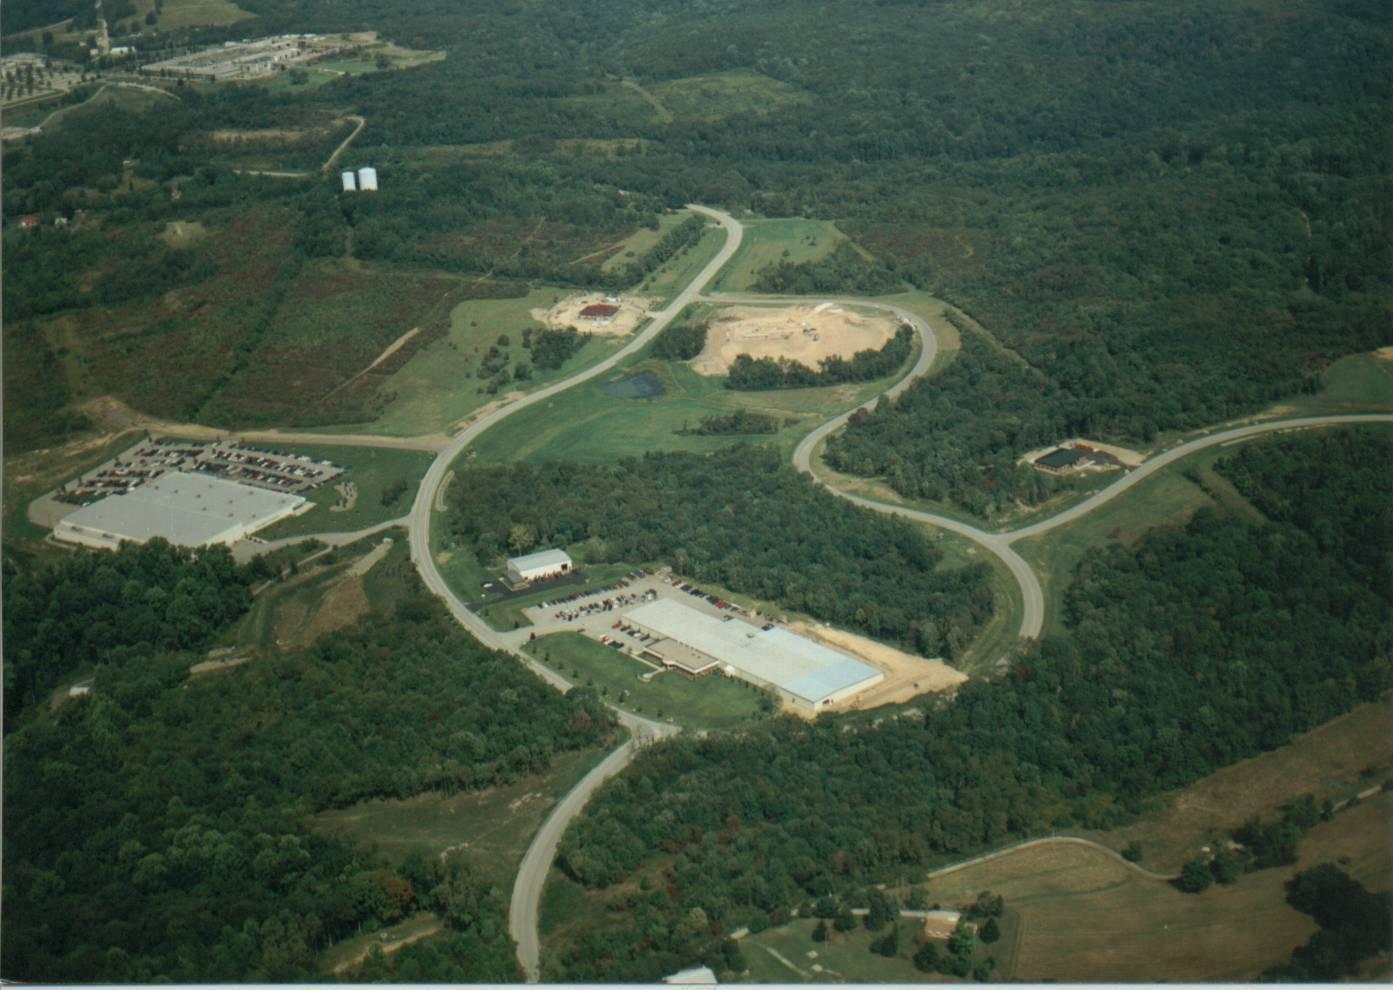 2001 Aerial Business and Research Park